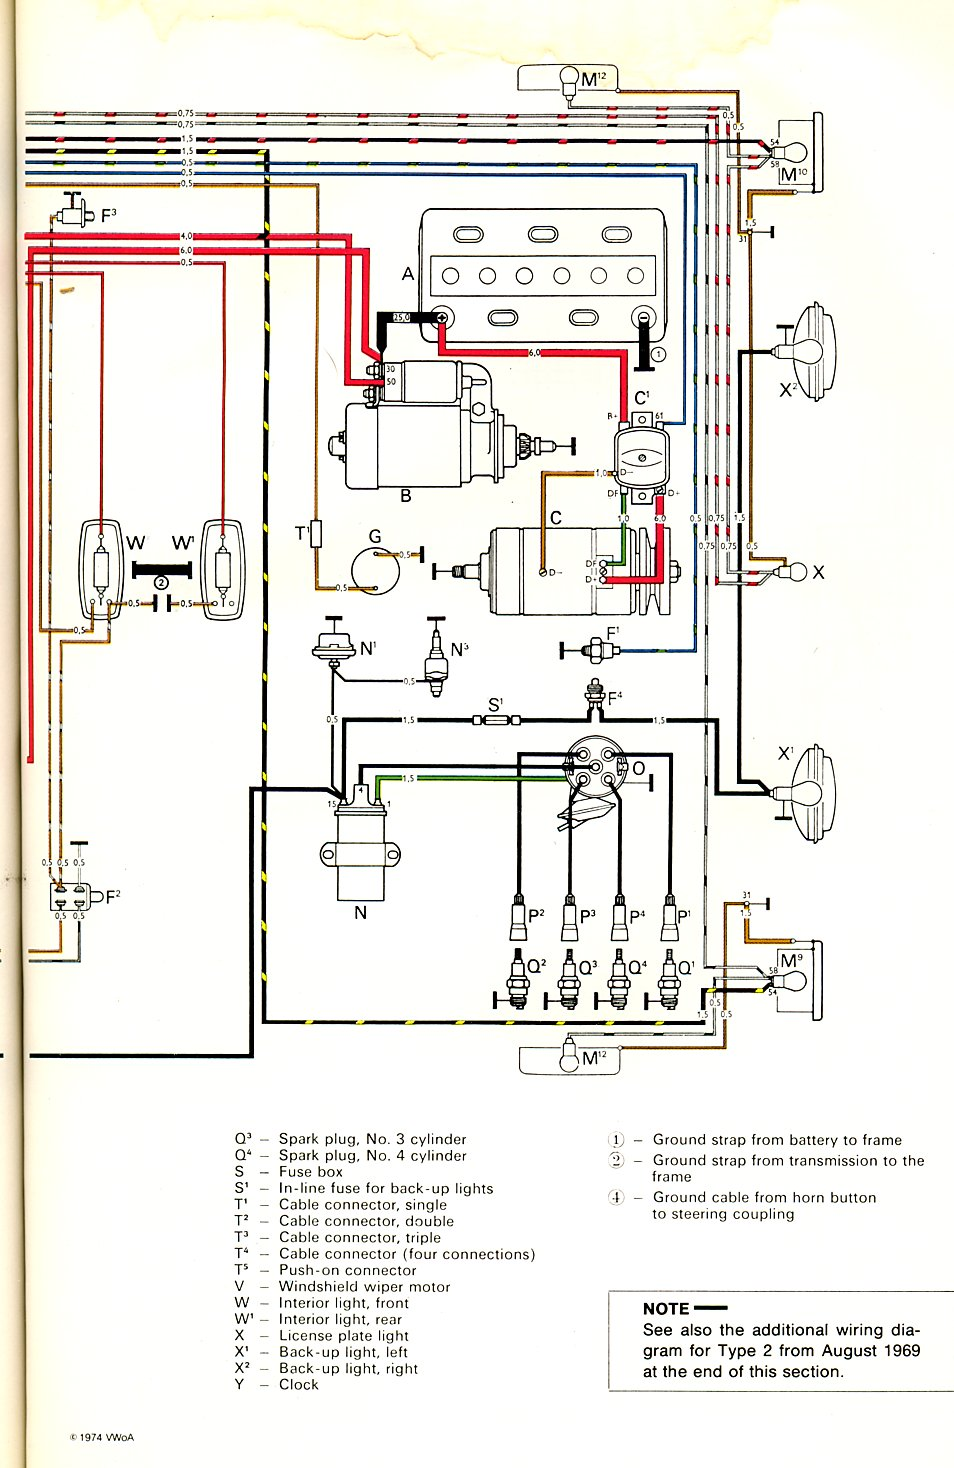 1970 bus wiring diagram. Black Bedroom Furniture Sets. Home Design Ideas